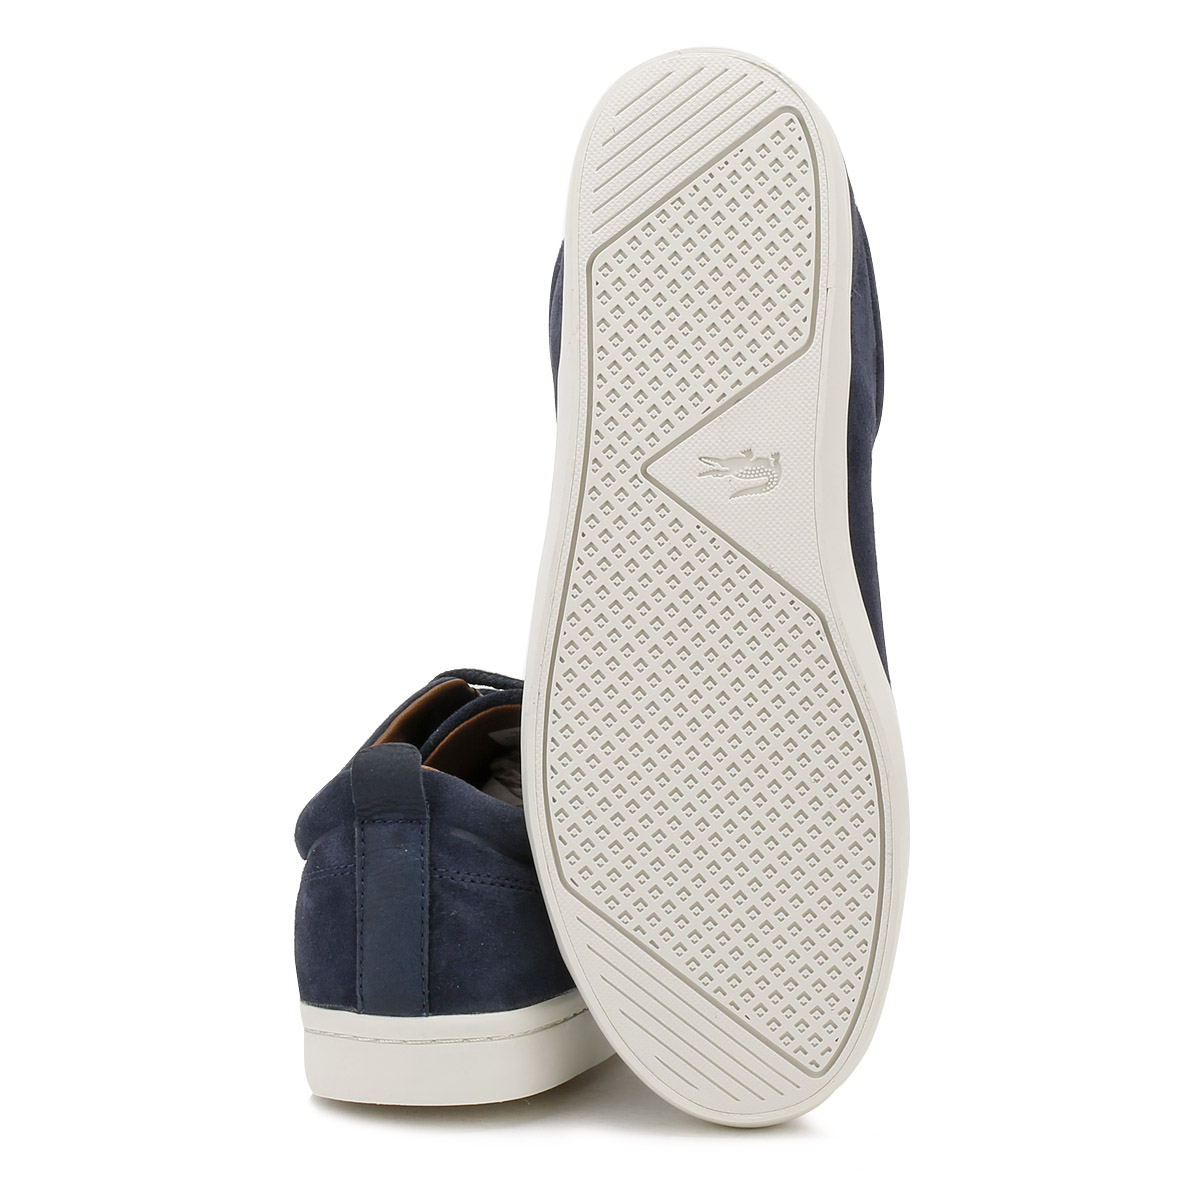 Lacoste  Herren Navy Blau Straightset 317 Sport Trainers, Lace Up Sport 317 Casual Schuhes 1ec76d